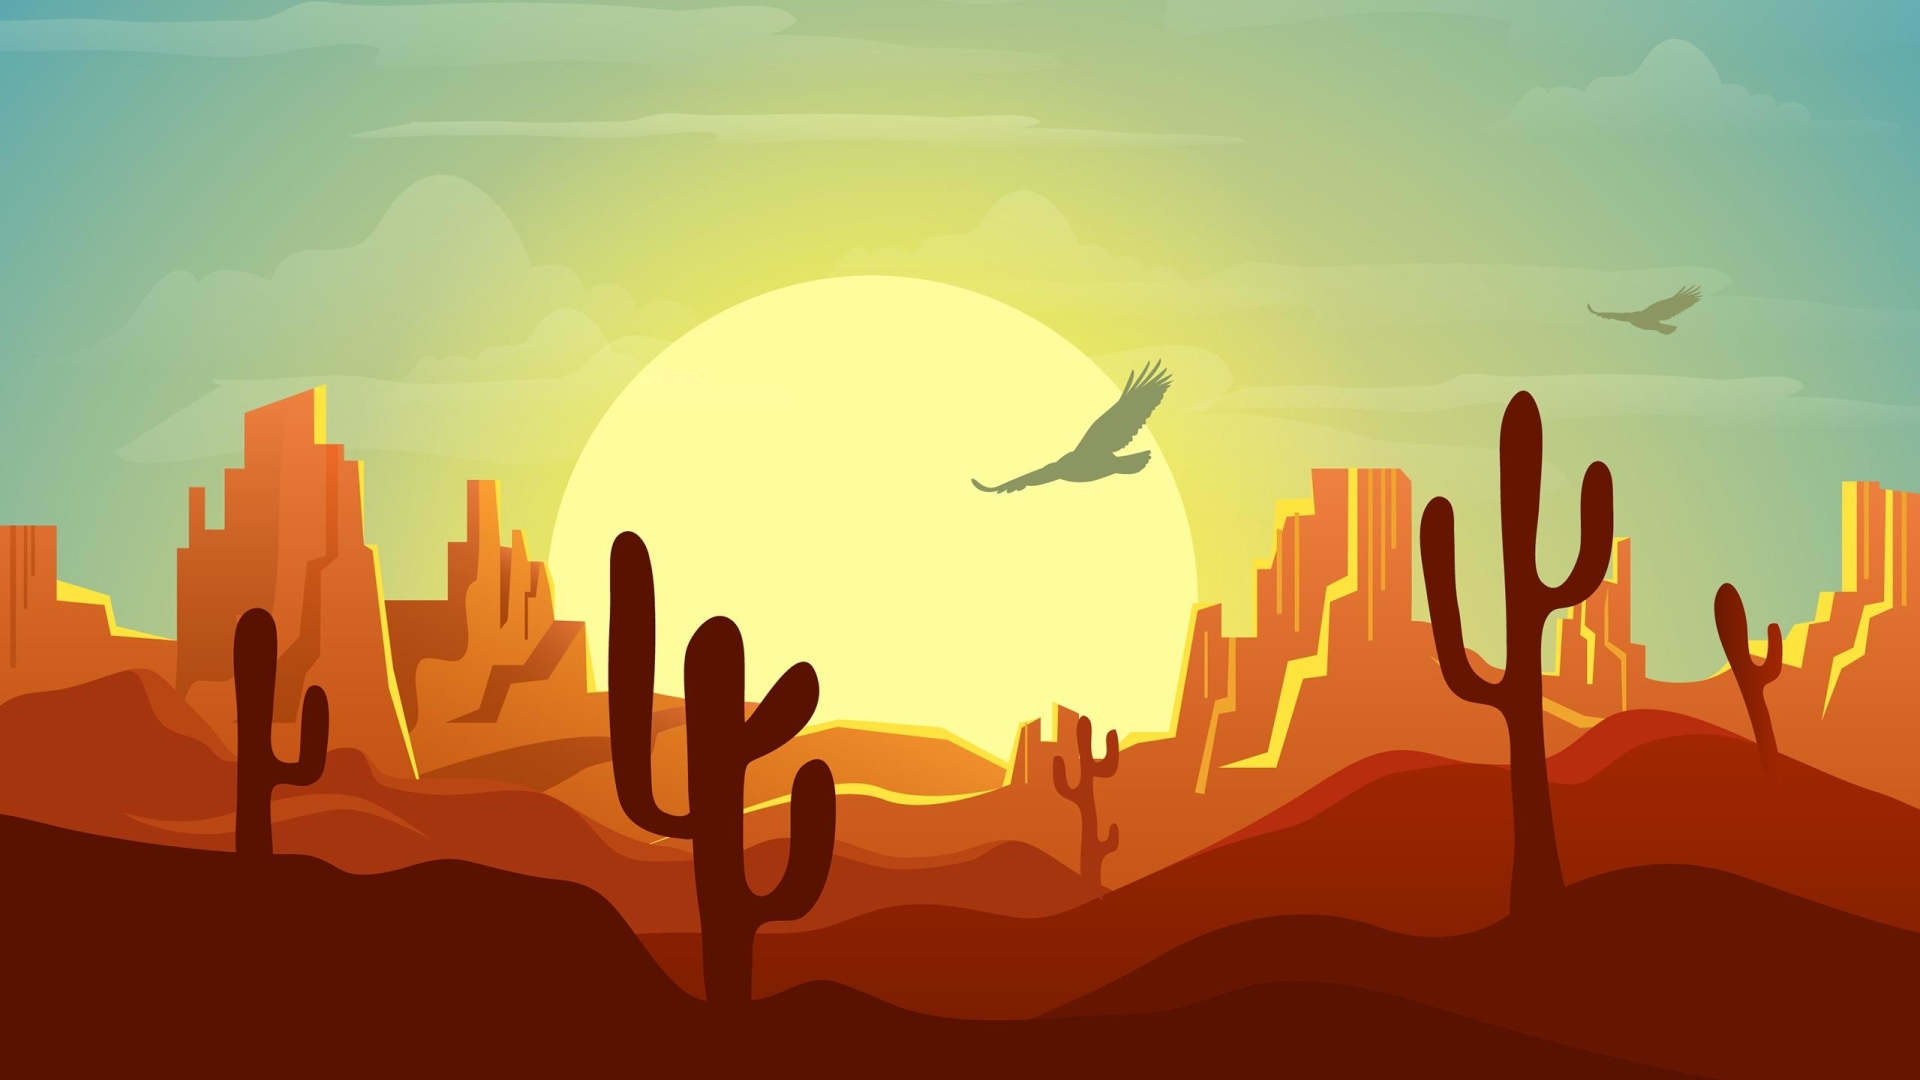 1920x1080 Minimalist Desert At Sunset 1080p Laptop Full Hd Wallpaper Hd Artist 4k Wallpapers Images Photos And Background